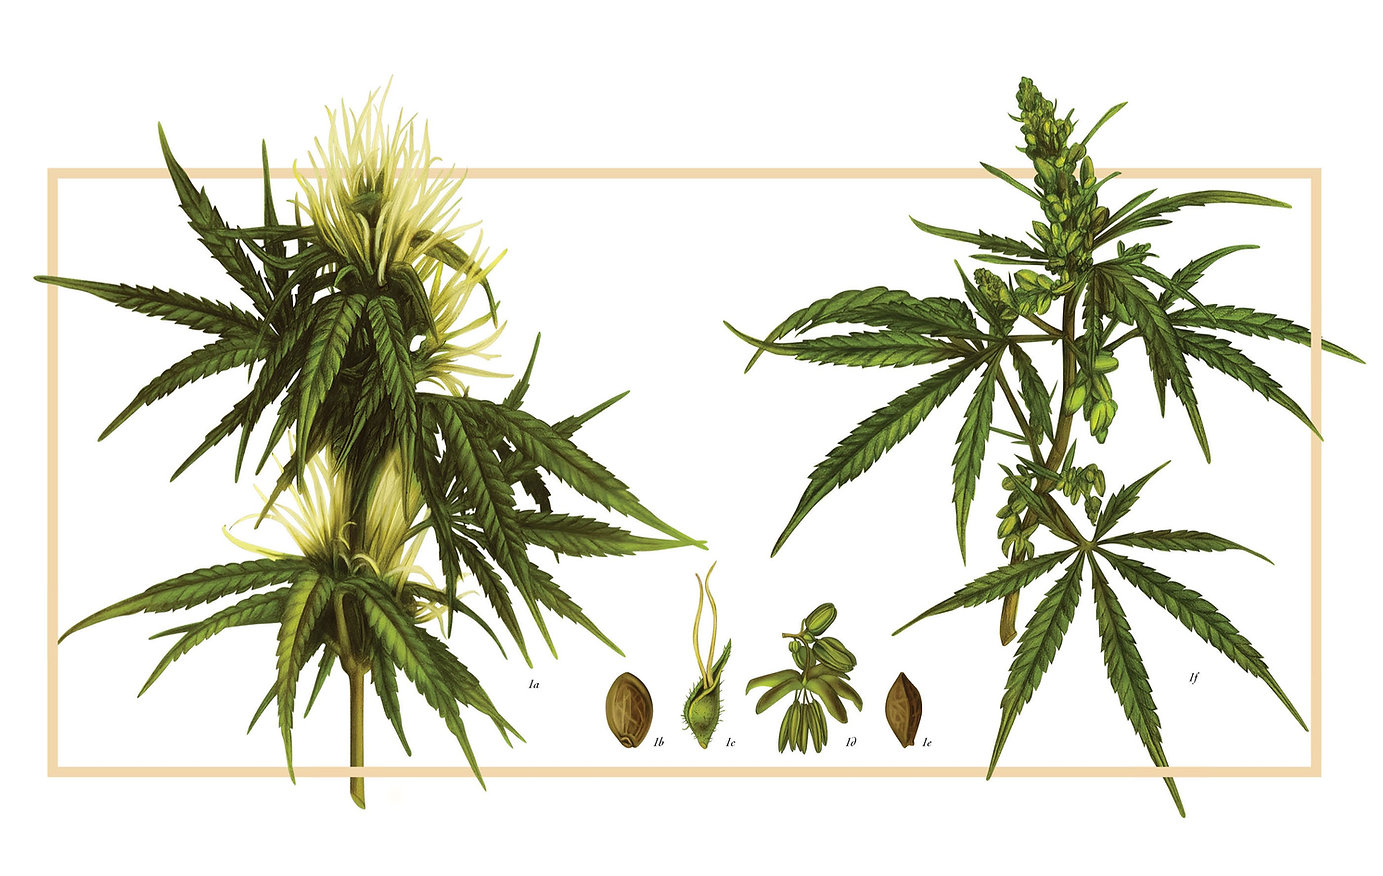 Female%20and%20male%20plant%20illustrati